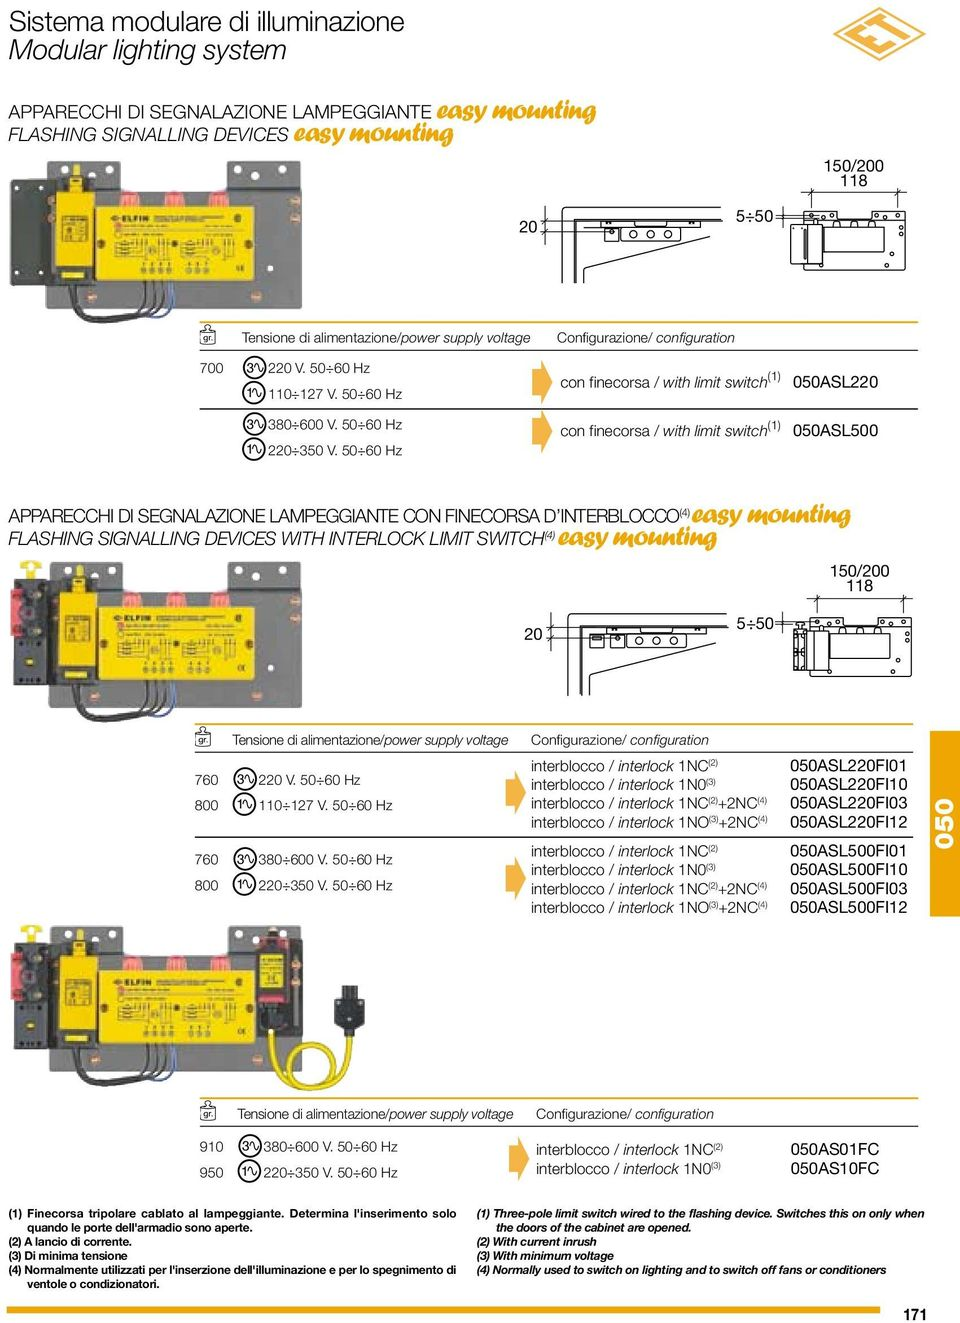 0 0 Hz Configurazione/ configuration con finecorsa / with limit switch () AS0 con finecorsa / with limit switch () AS00 APPARECCHI DI SEGNAAZIONE AMPEGGIANTE CON FINECORSA D INTERBOCCO () easy